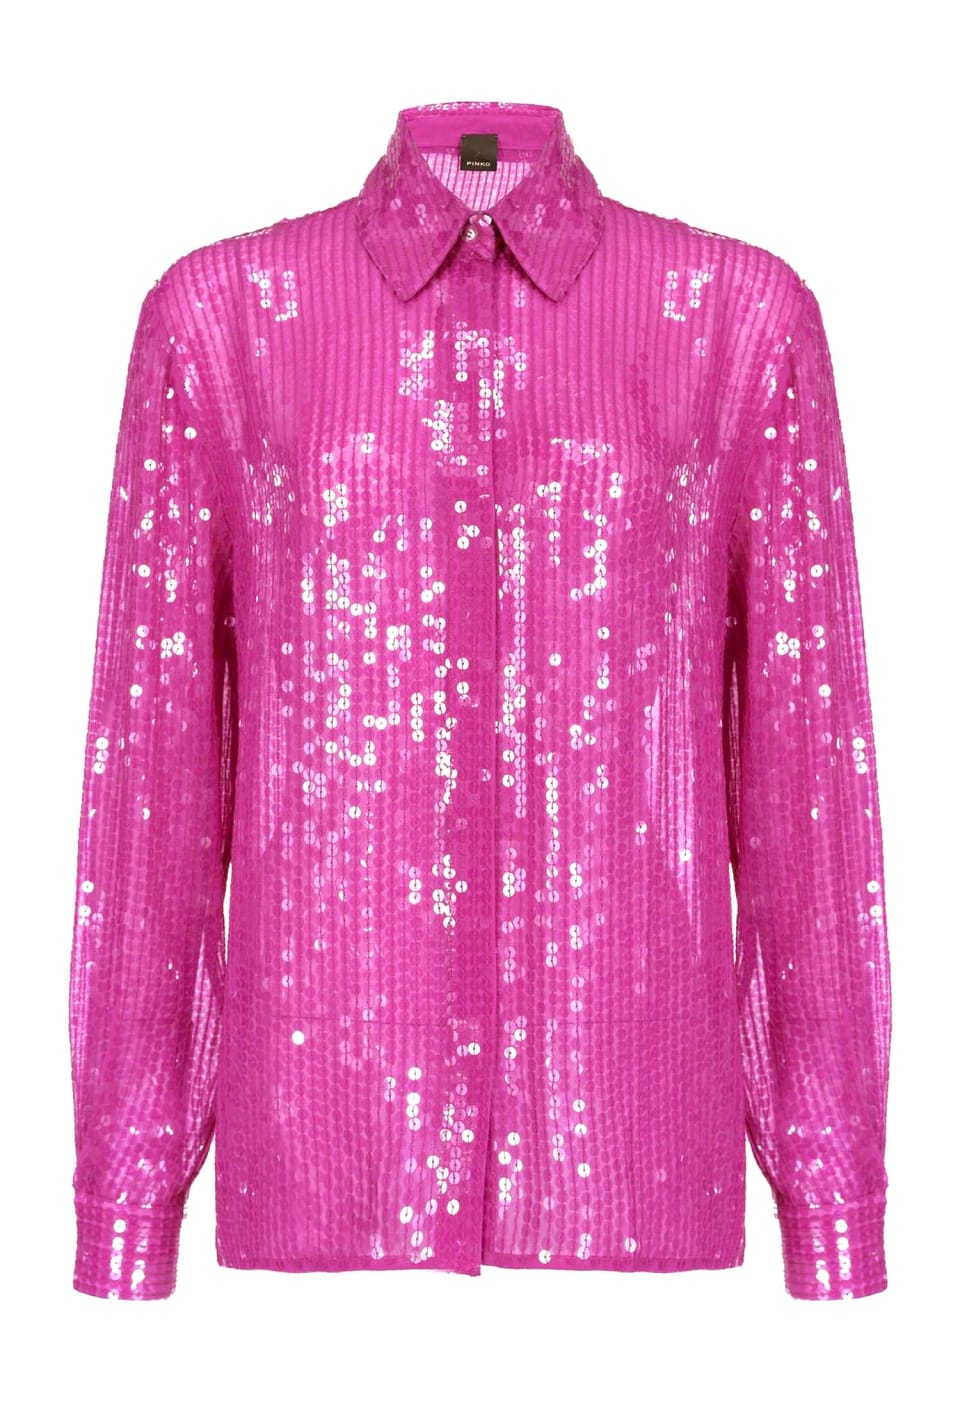 Shirt full of shiny sequins